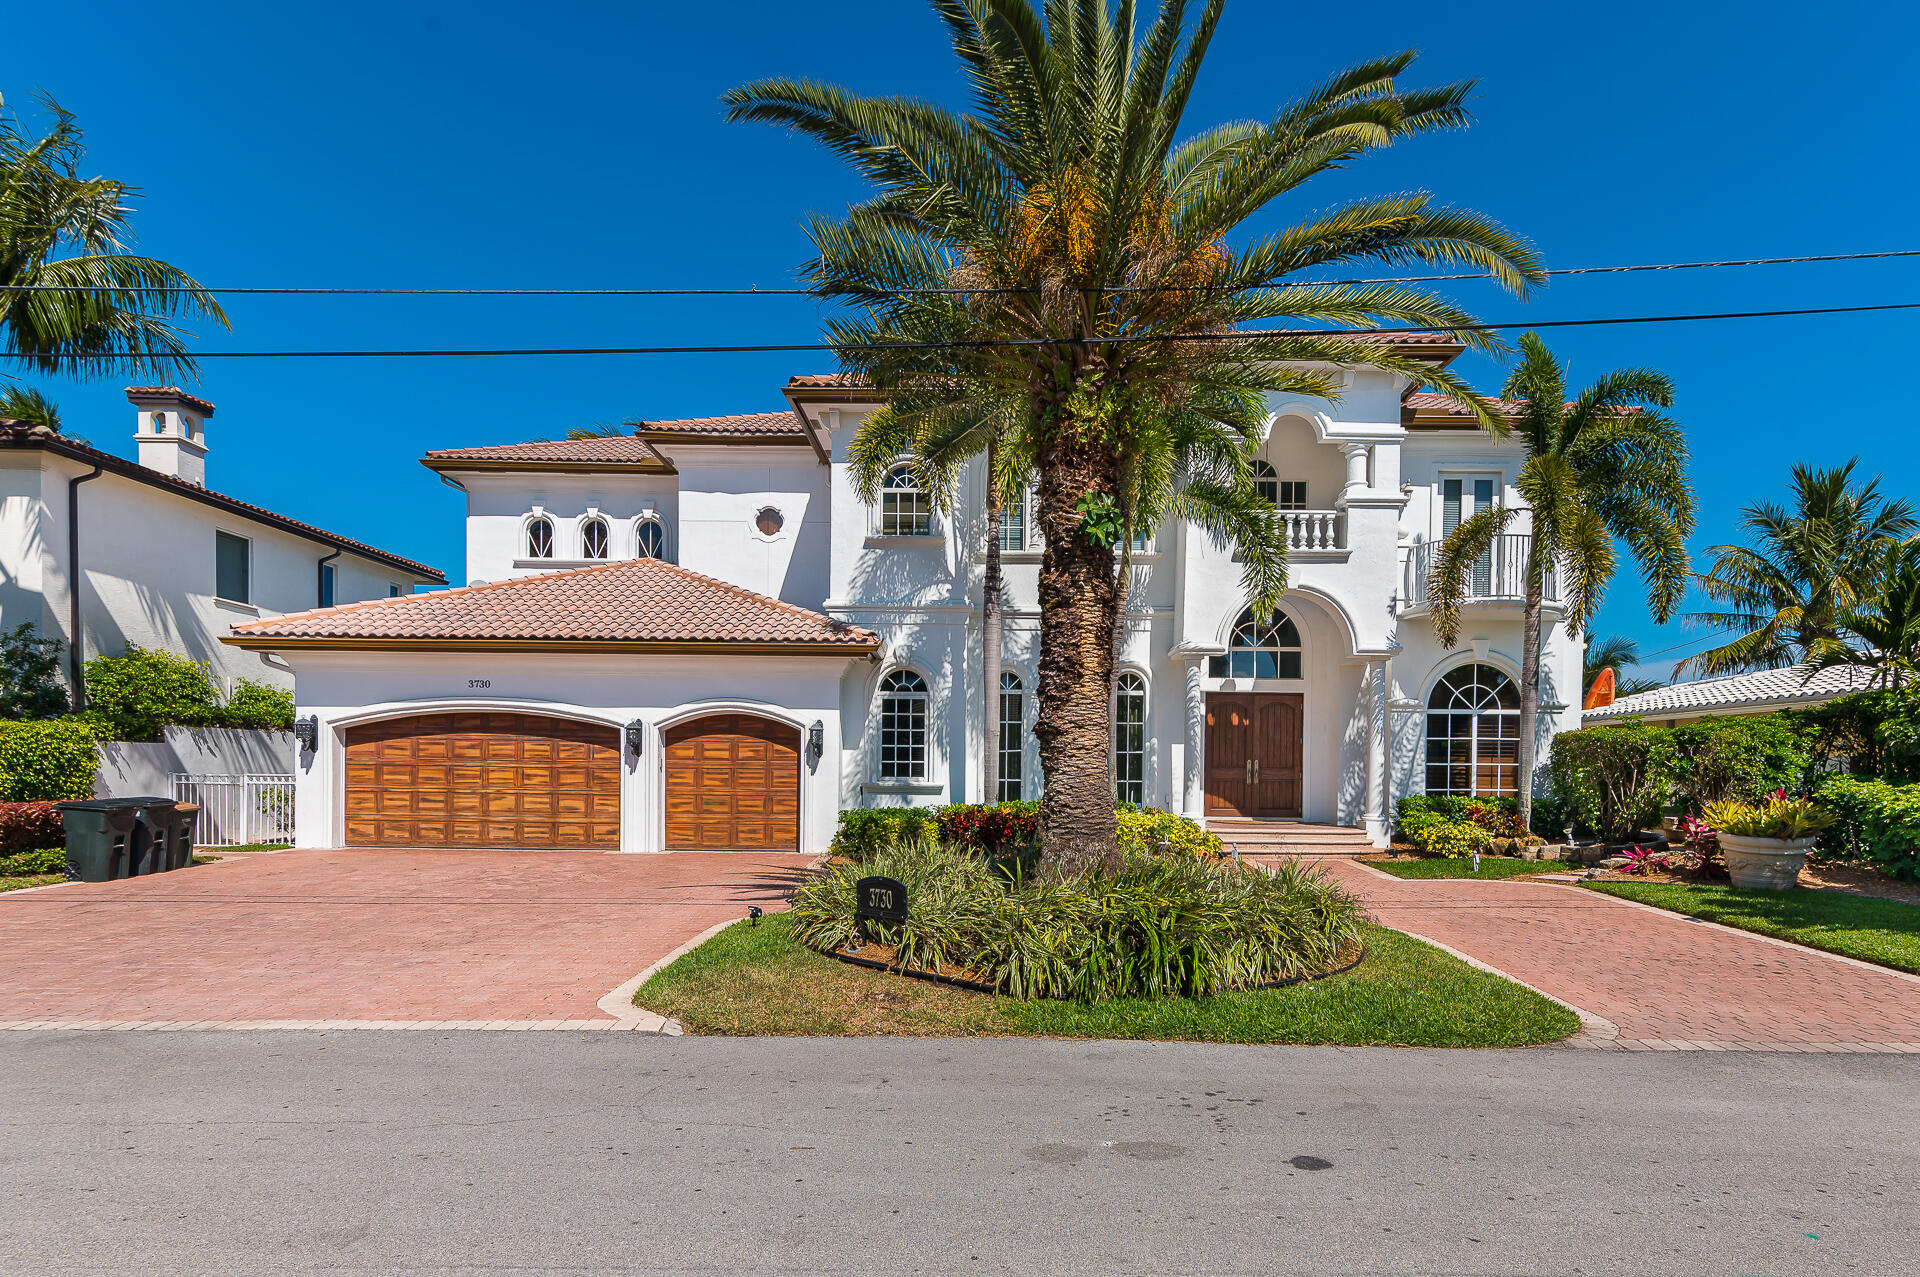 Venetian Isles, 3730 NE 26th, Lighthouse Point, Florida 33064